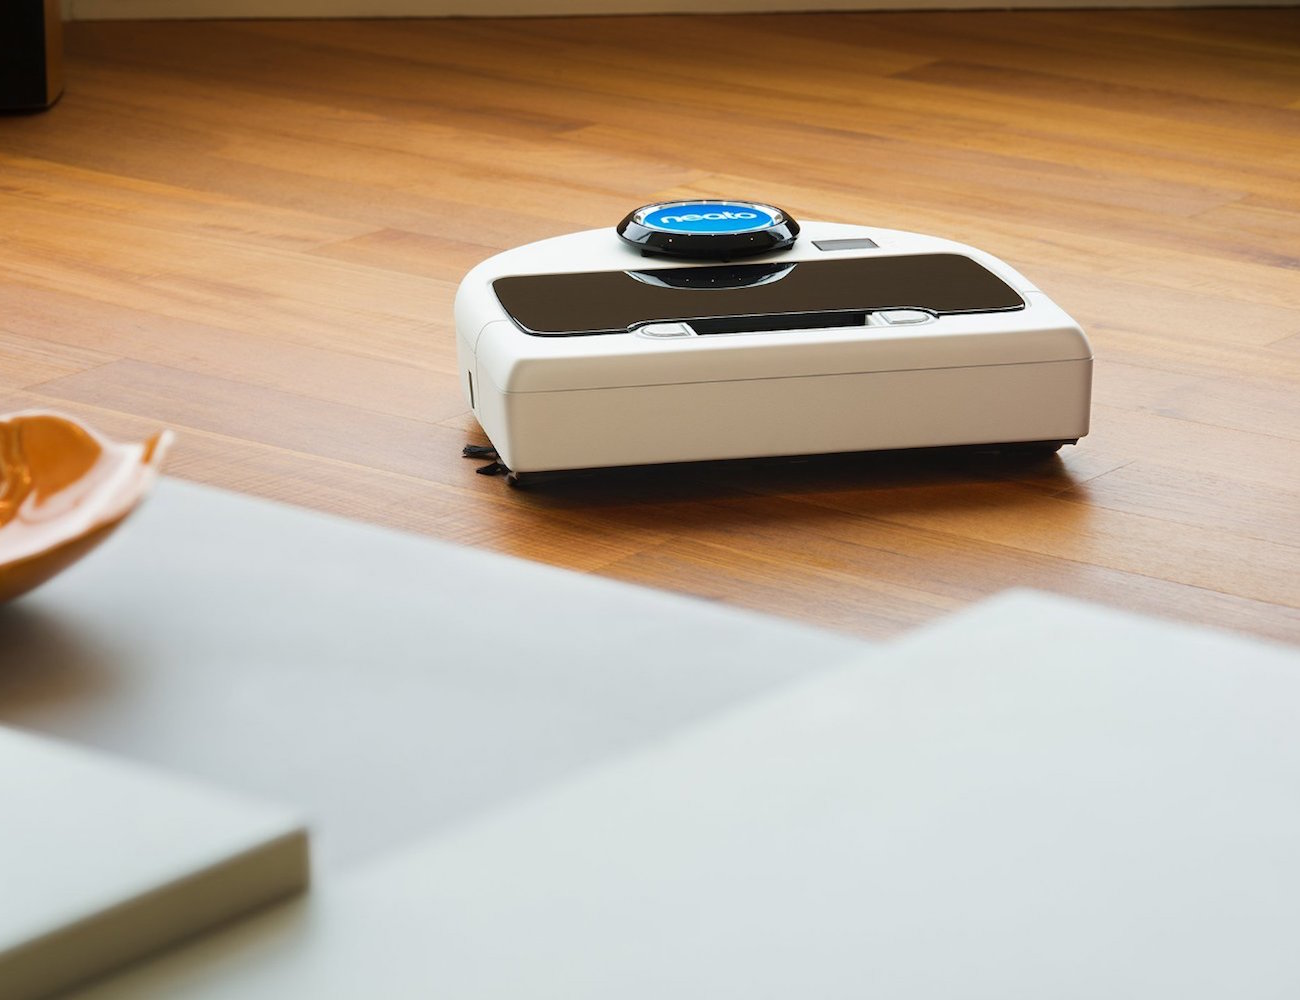 Neato Botvac D Series Robot Vacuum Cleaner